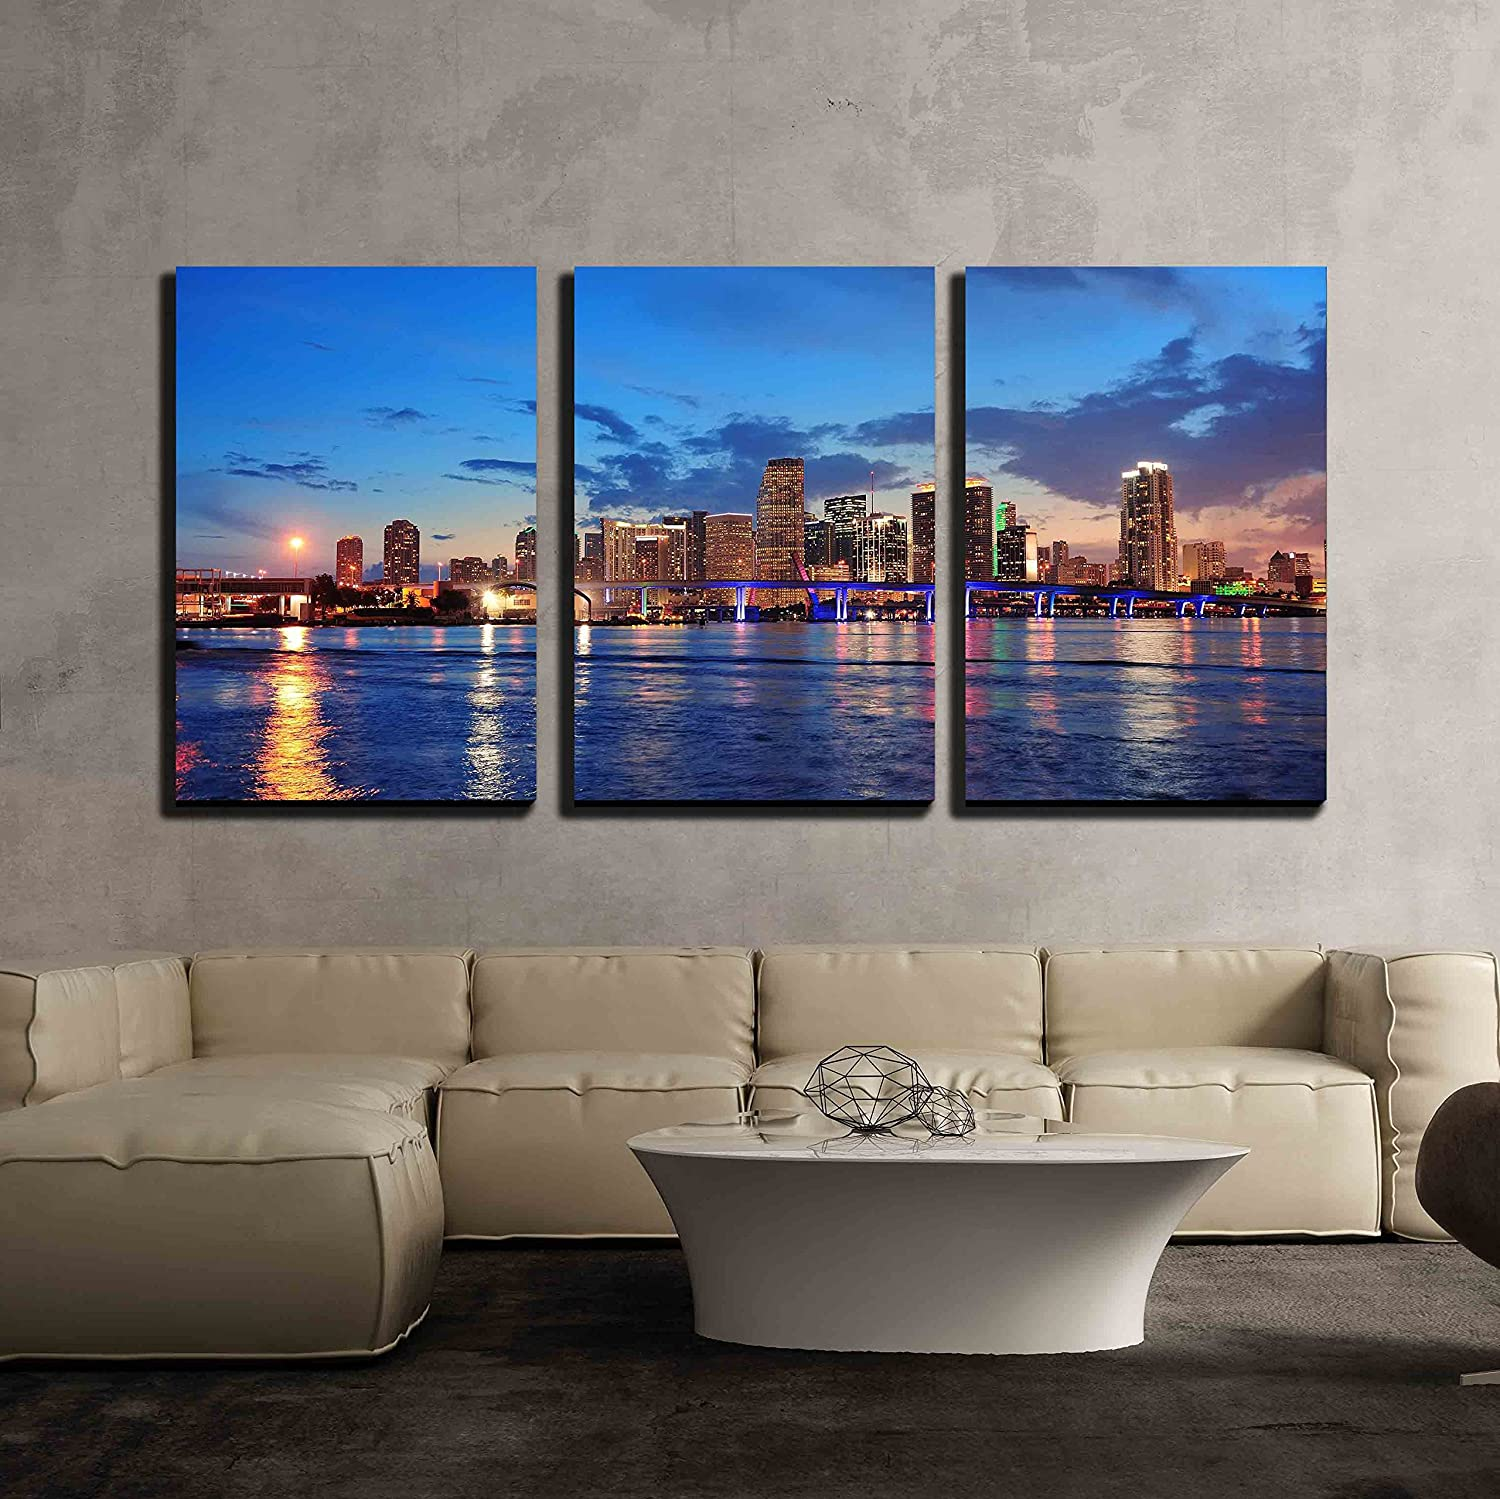 3 Piece Canvas Wall Art - Miami City Skyline Panorama at Dusk with Urban Skyscrapers and Bridge Over Sea - Modern Home Art Stretched and Framed Ready to Hang - 24